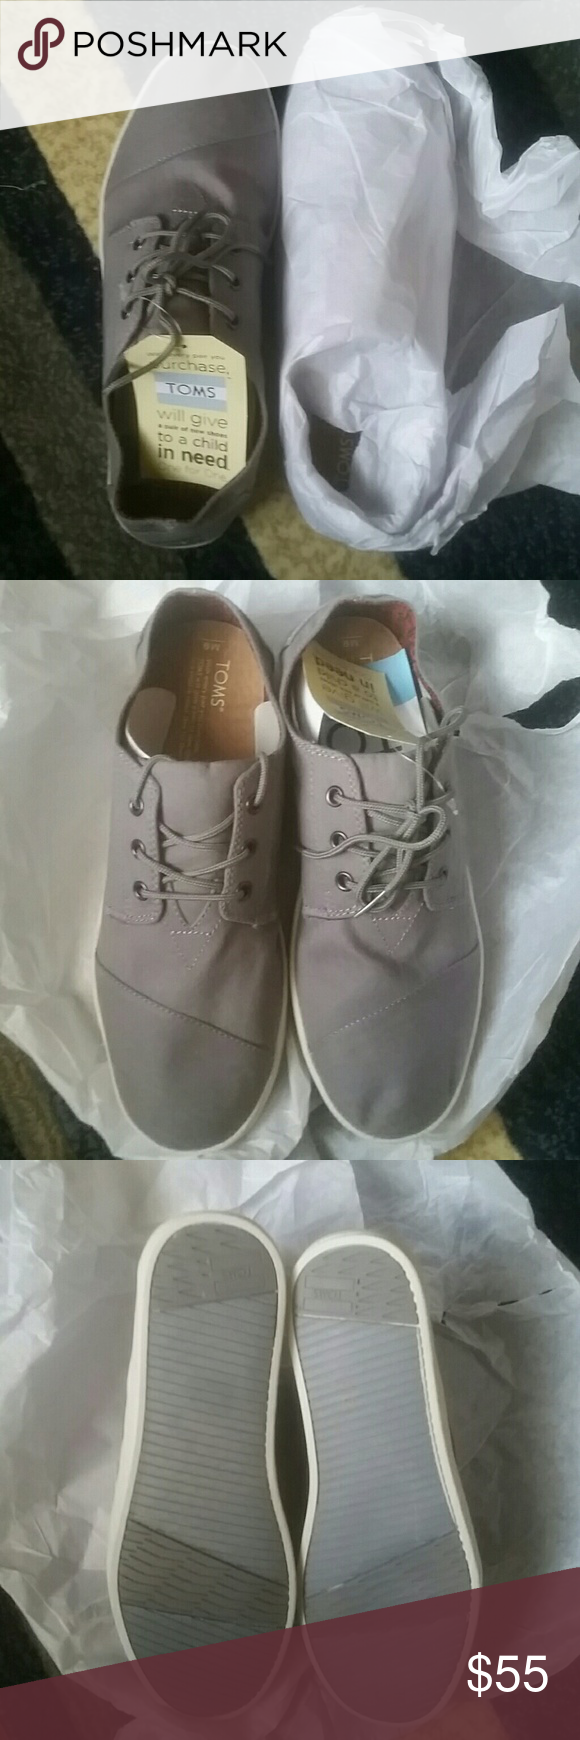 Shoes Toms never been worn  Gray   Clean   No Box... TOMS Shoes Boat Shoes